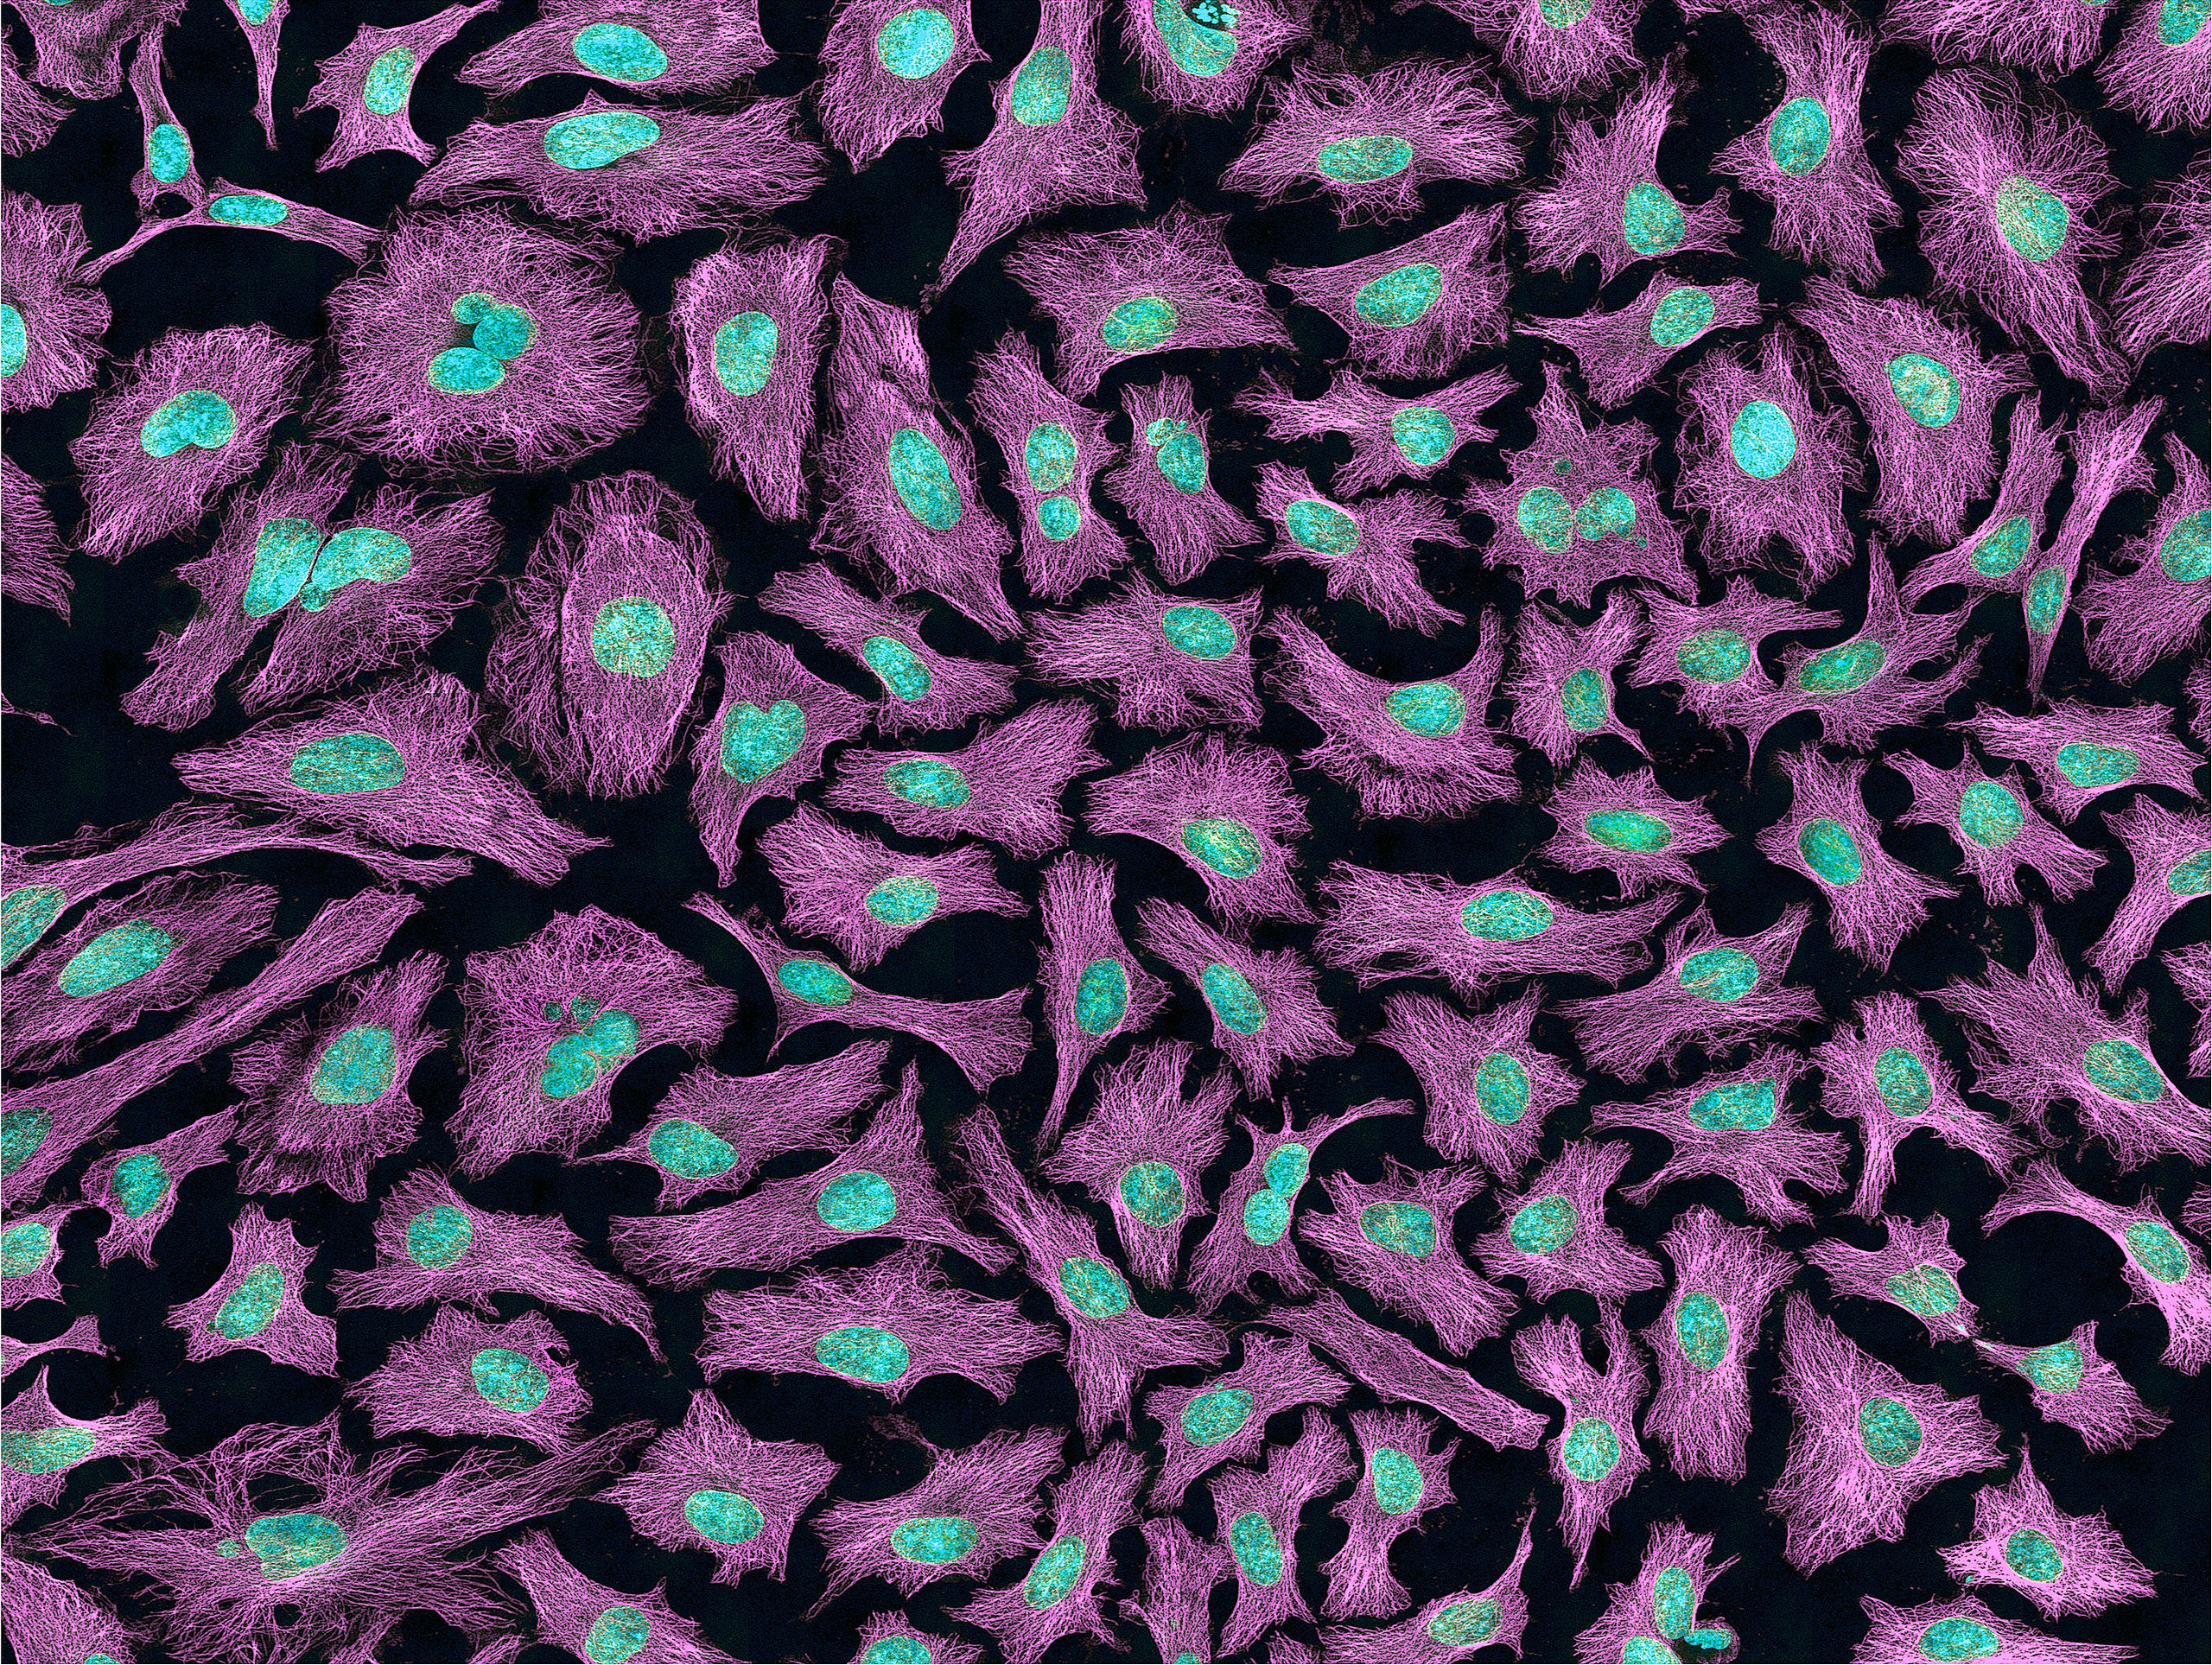 Multiphoton fluorescence image of HeLa cells with cytoskeletal microtubules (magenta) and DNA (cyan). Nikon RTS2000MP custom laser scanning microscope. Image by National Institutes of Health (NIH).